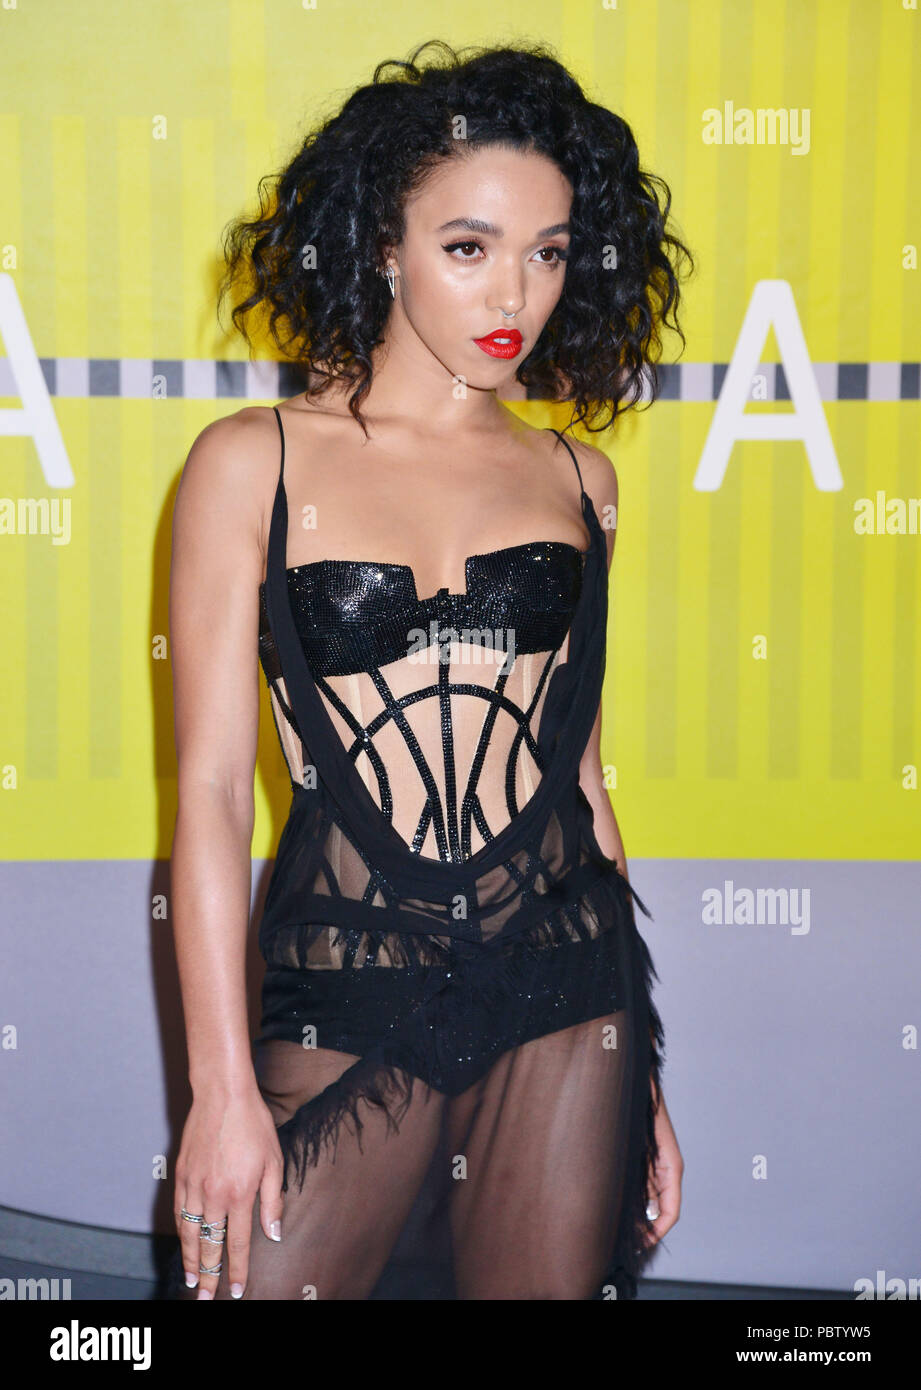 FKA Twigs 407  at the MTV VMA Awards 2015 at the Microsoft Theatre in Los Angeles. August 30, 2015.FKA Twigs 407 ------------- Red Carpet Event, Vertical, USA, Film Industry, Celebrities,  Photography, Bestof, Arts Culture and Entertainment, Topix Celebrities fashion /  Vertical, Best of, Event in Hollywood Life - California,  Red Carpet and backstage, USA, Film Industry, Celebrities,  movie celebrities, TV celebrities, Music celebrities, Photography, Bestof, Arts Culture and Entertainment,  Topix, Three Quarters, vertical, one person,, from the year , 2015, inquiry tsuni@Gamma-USA.com - Stock Image